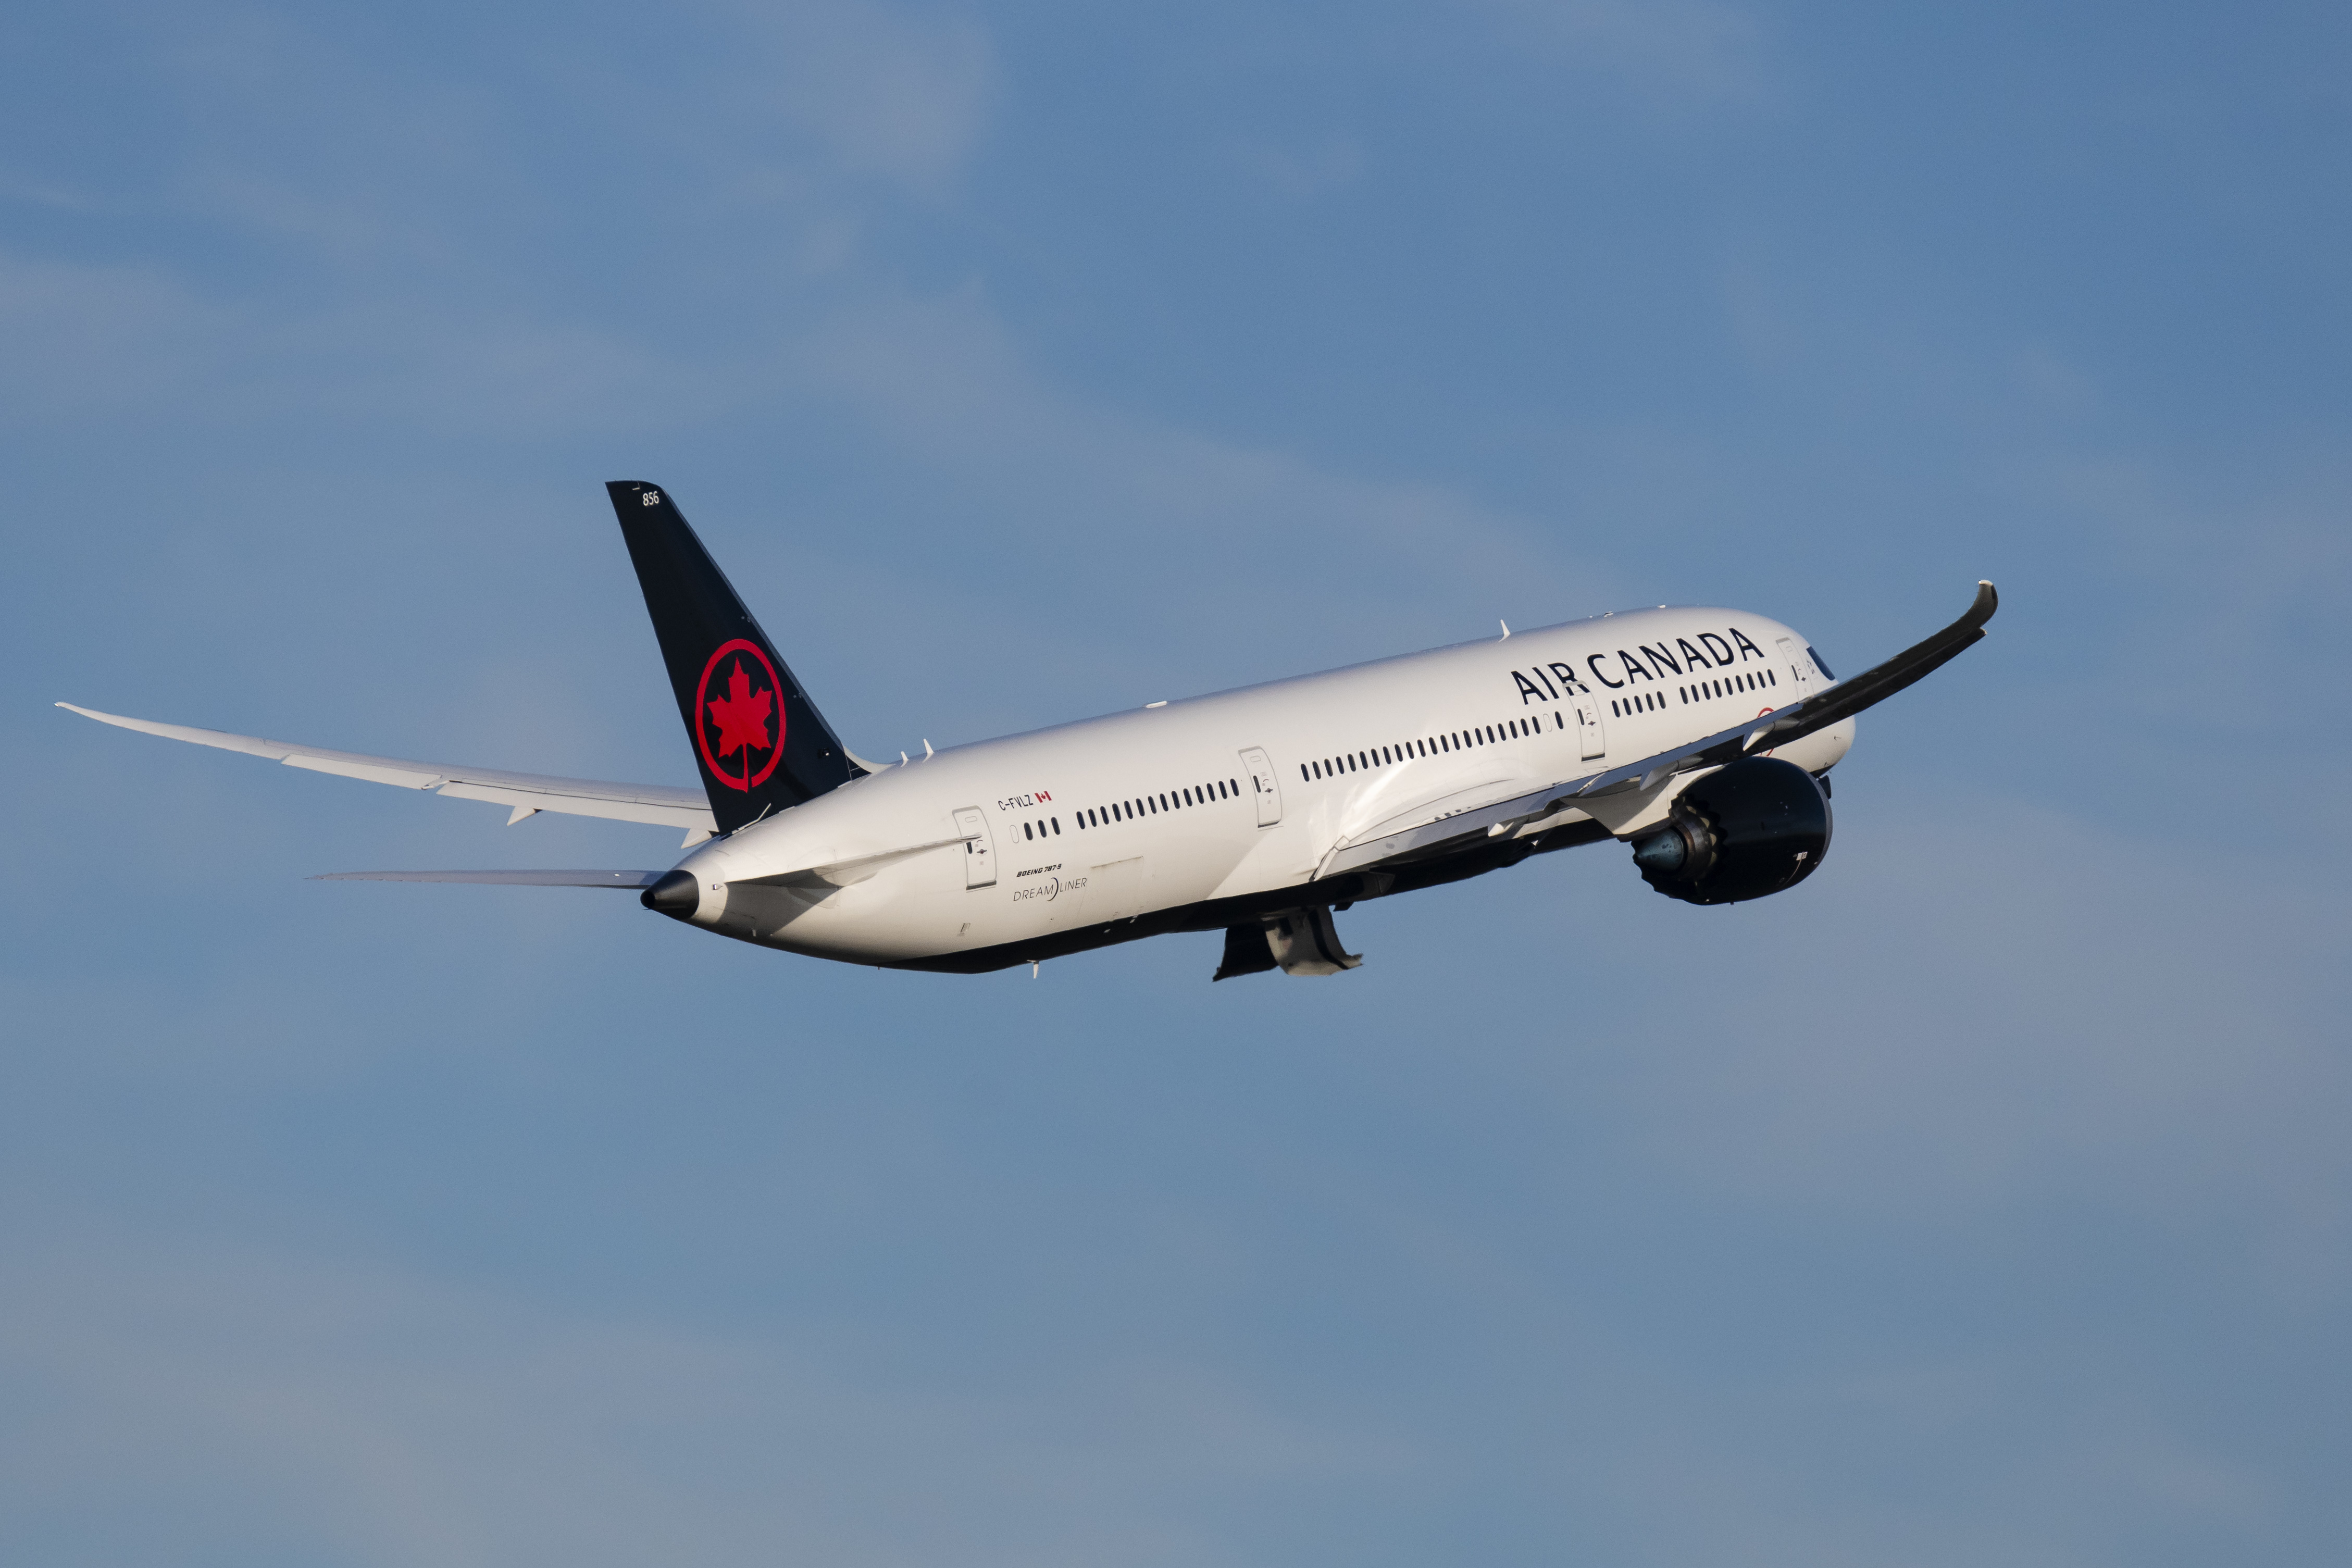 Air Canada reviews how sleeping passenger was left behind